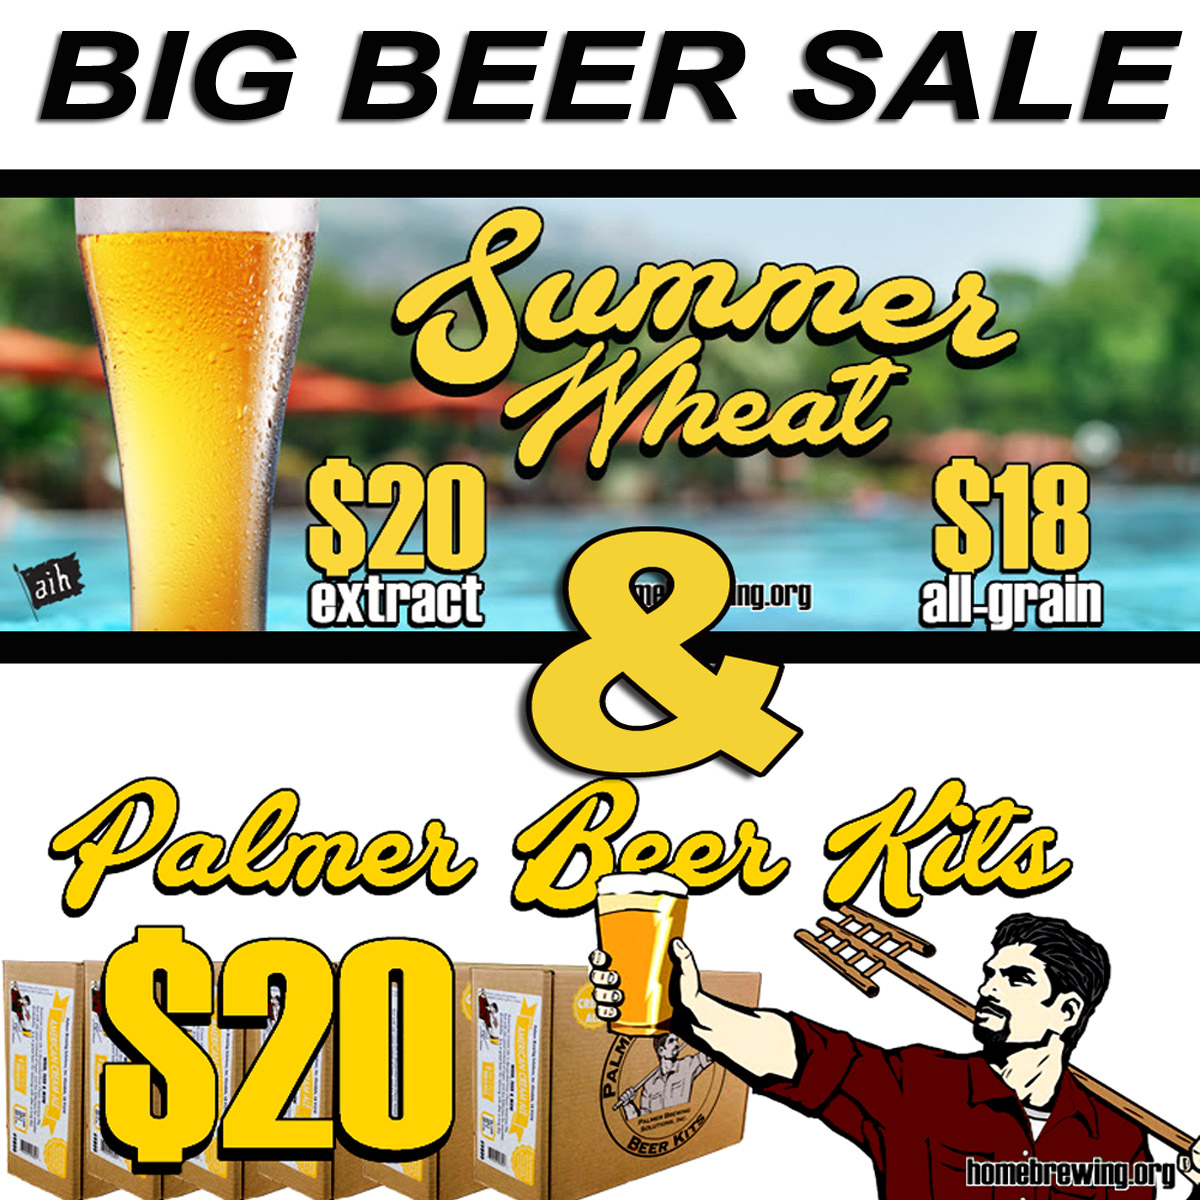 Beer Coupons And Beer Discounts : Yatra Coupon Codes 2018 For - Free Printable Beer Coupons